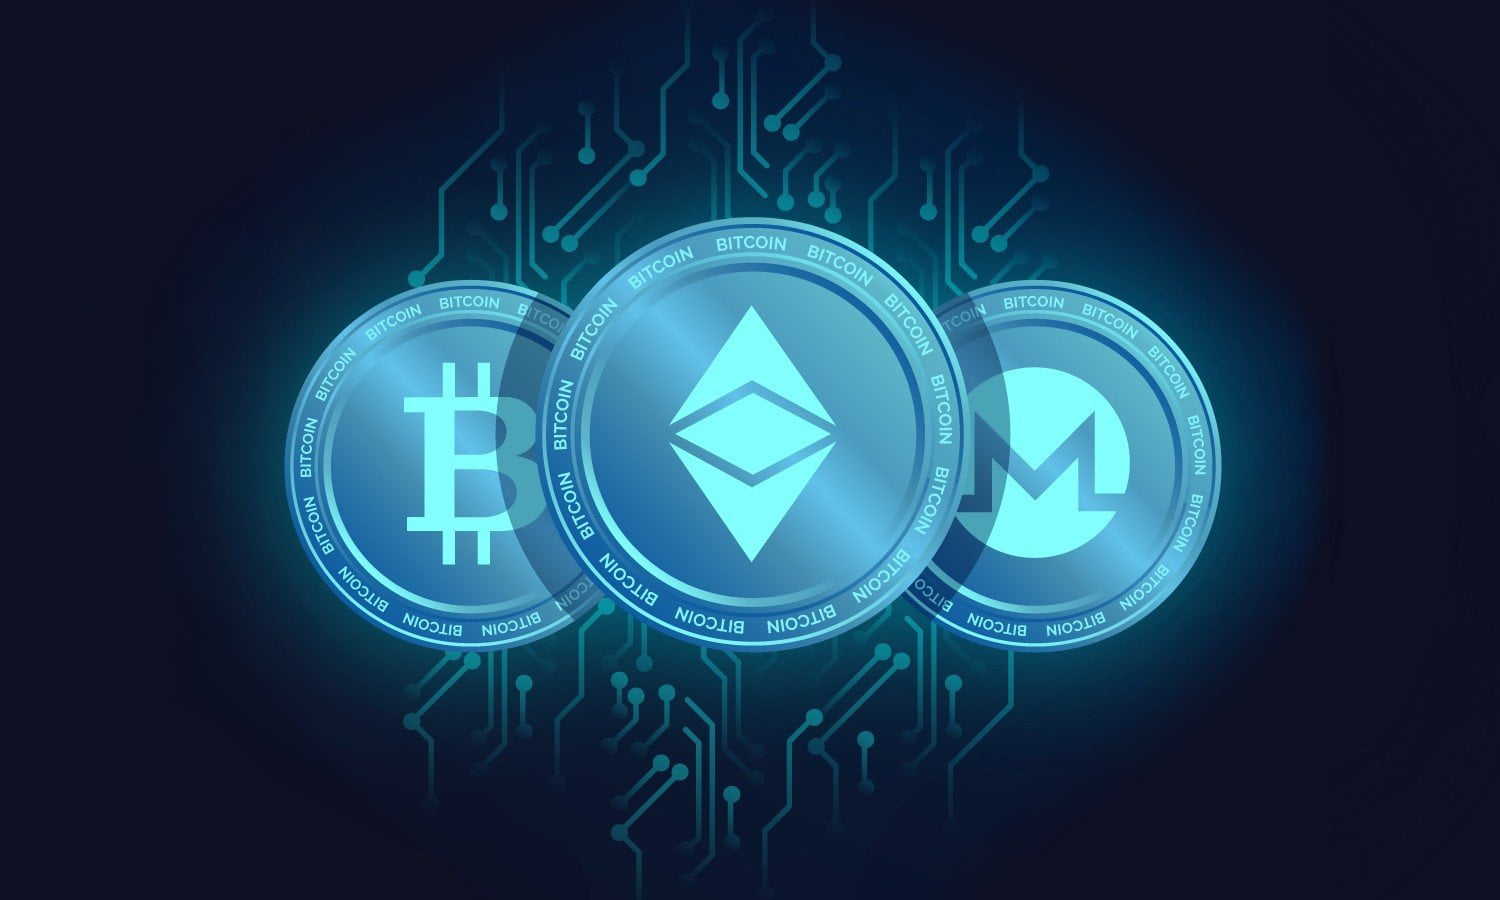 Cryptocurrencies what they are and what risks they take - Cryptocurrencies: what they are and what risks they take